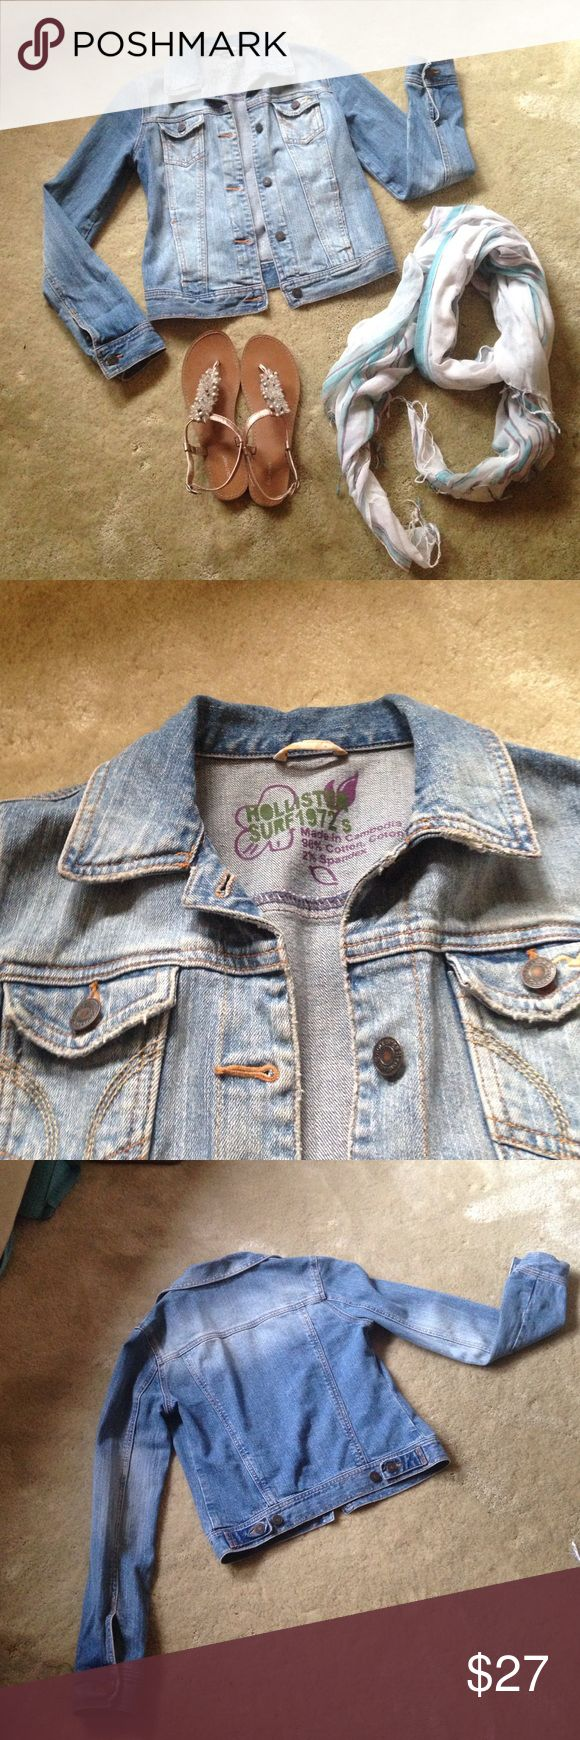 """Hollister distressed wash denim jacket An essential piece to have in your closet. Super cute distressed wash denim jacket with """"worn"""" edges on pockets and collar. In like new condition as it was only worn a few times. 98%cotton 2%spandex. Size S Hollister Jackets & Coats Jean Jackets"""